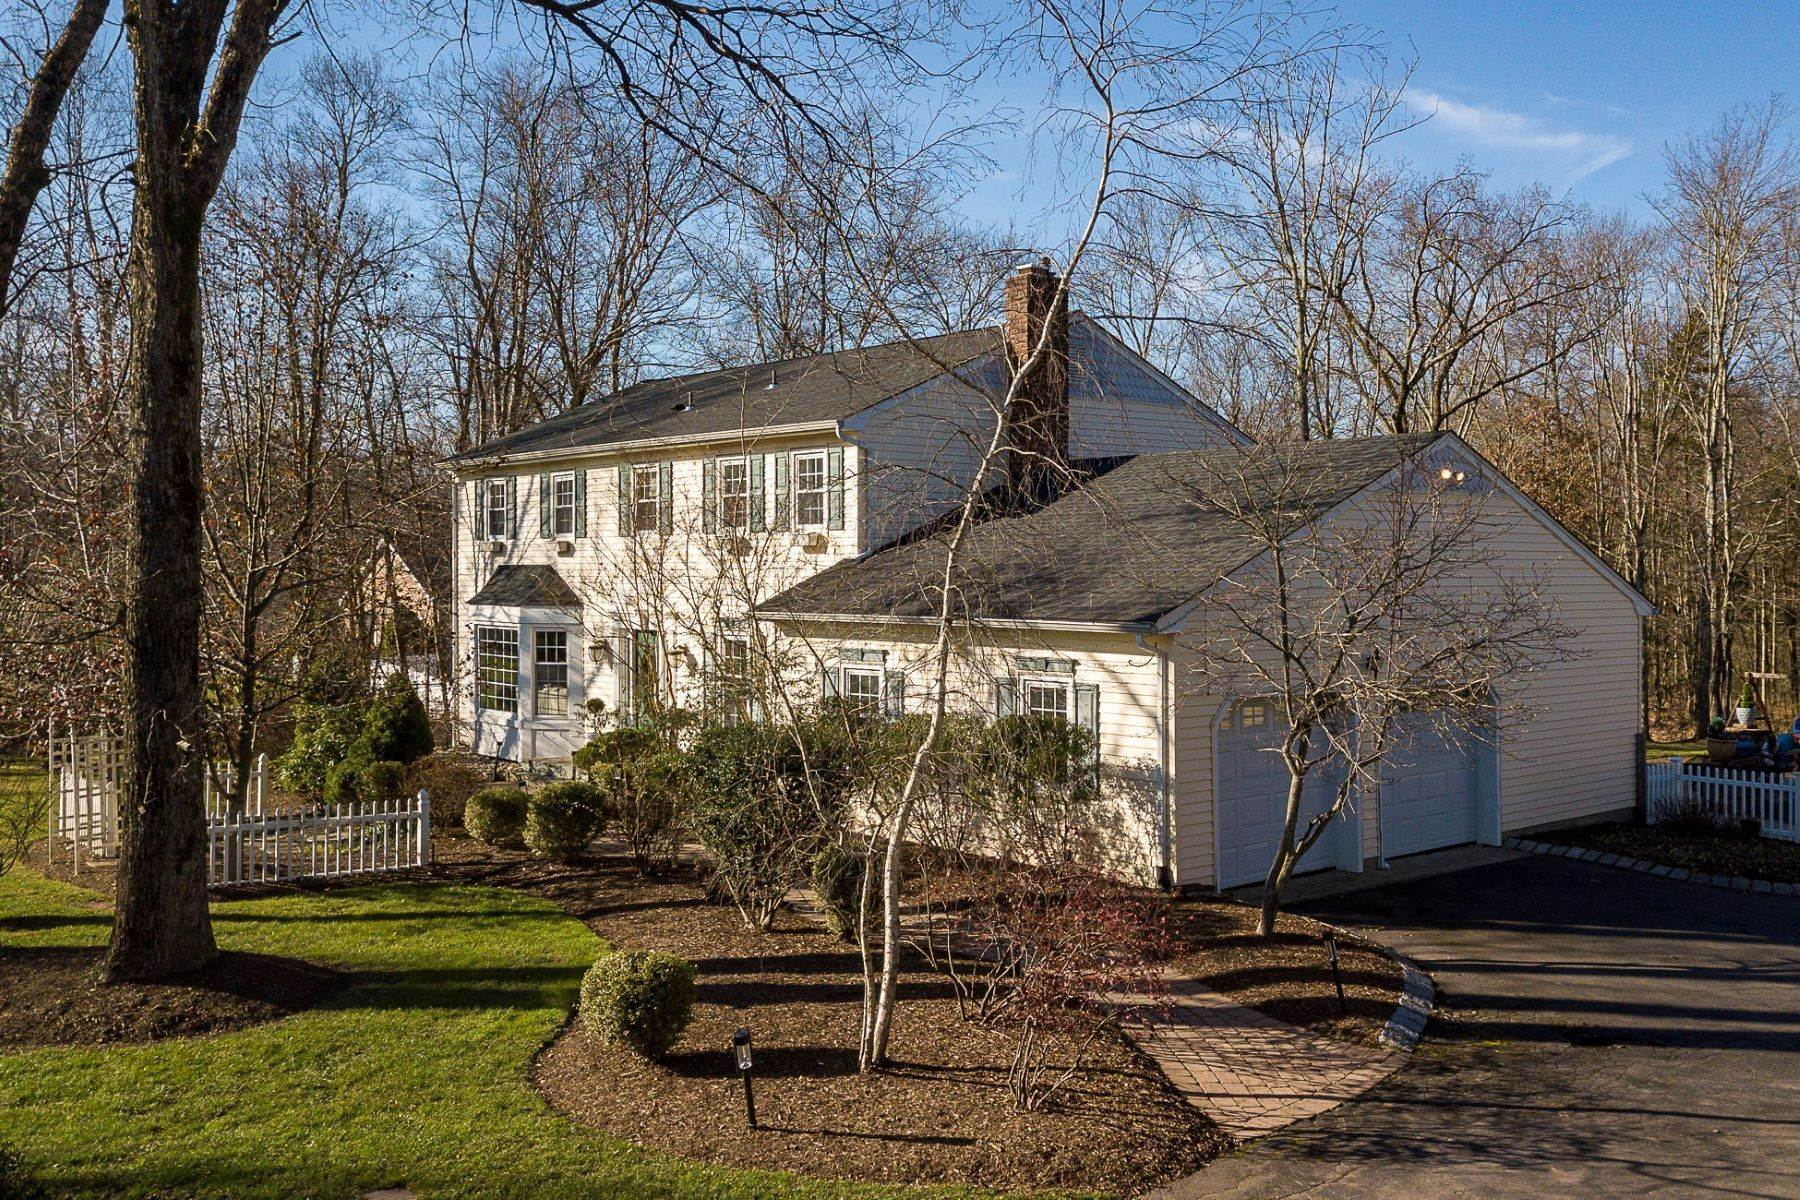 Single Family Homes for Sale at Spacious 5 Bedroom Offers the Best of Everything 193 Cherry Valley Road, Princeton, New Jersey 08540 United States